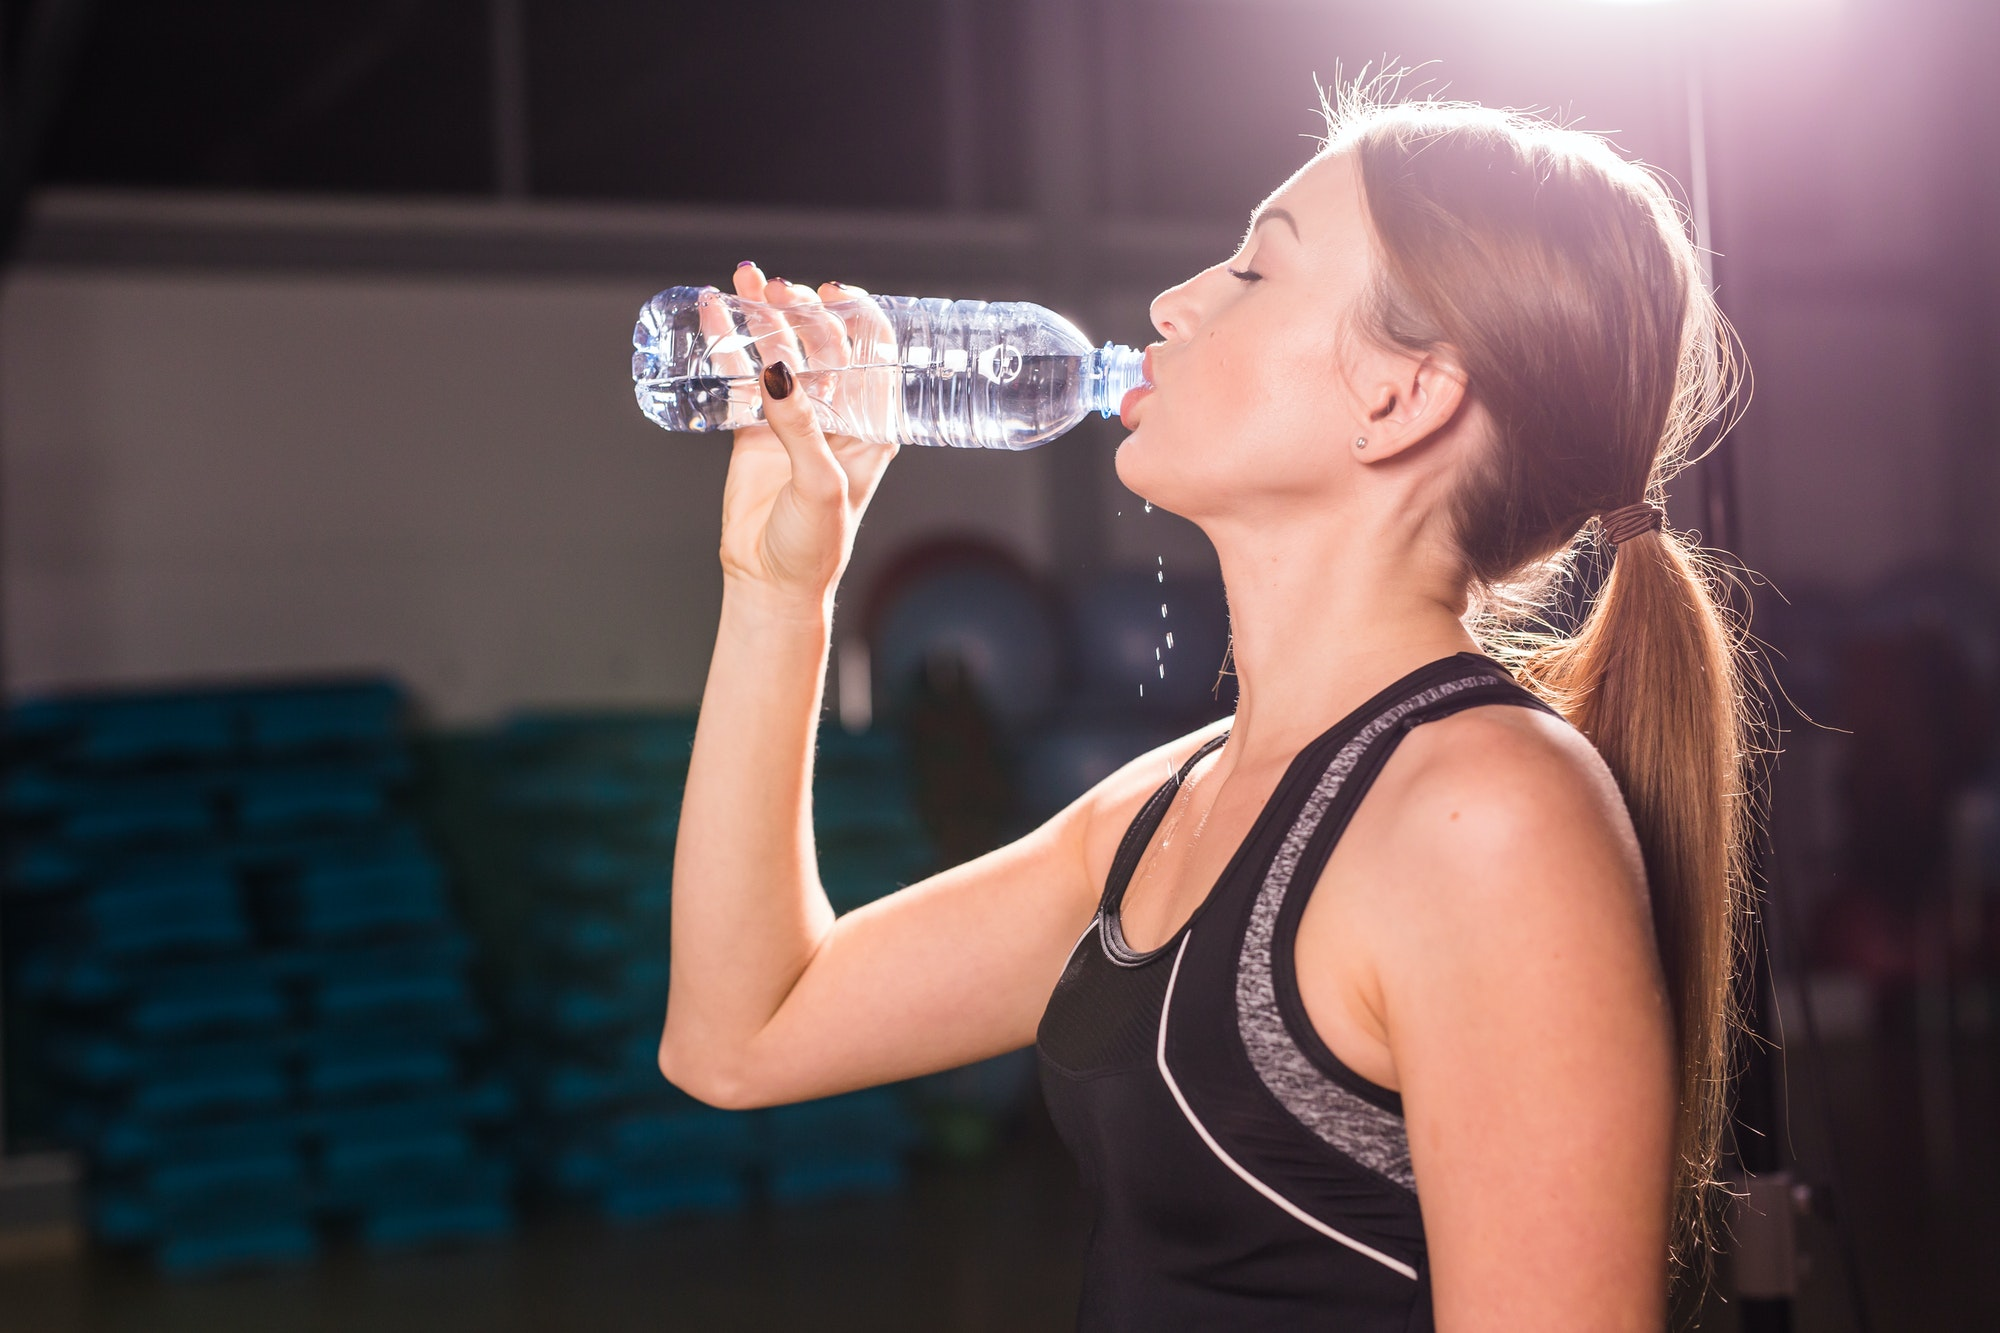 Beautiful fitness woman drinking water from the bottle